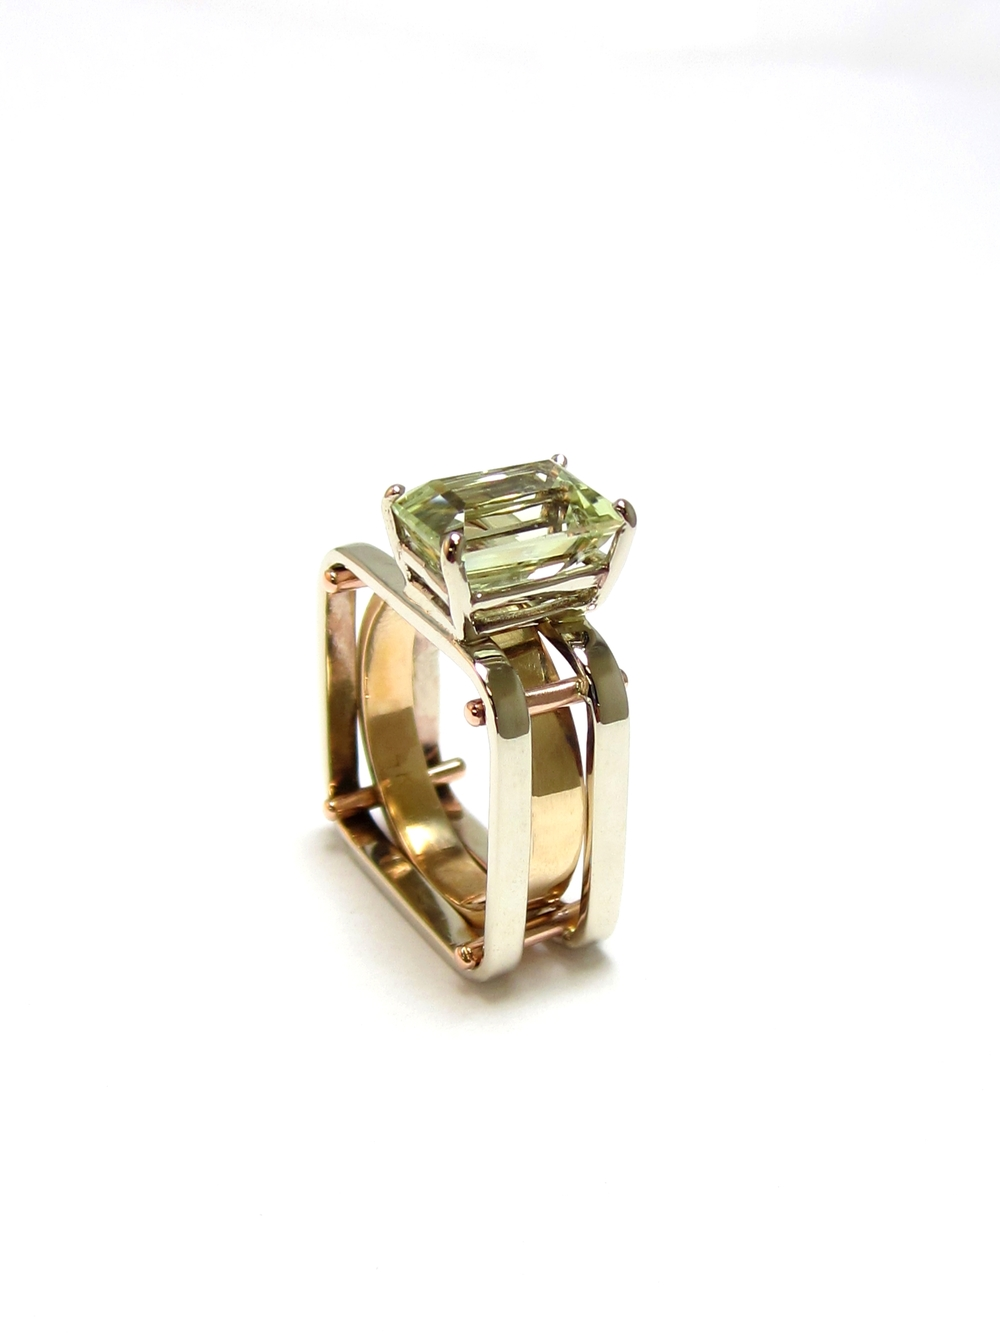 3 Tone 14k & Quartz Scaffold Ring